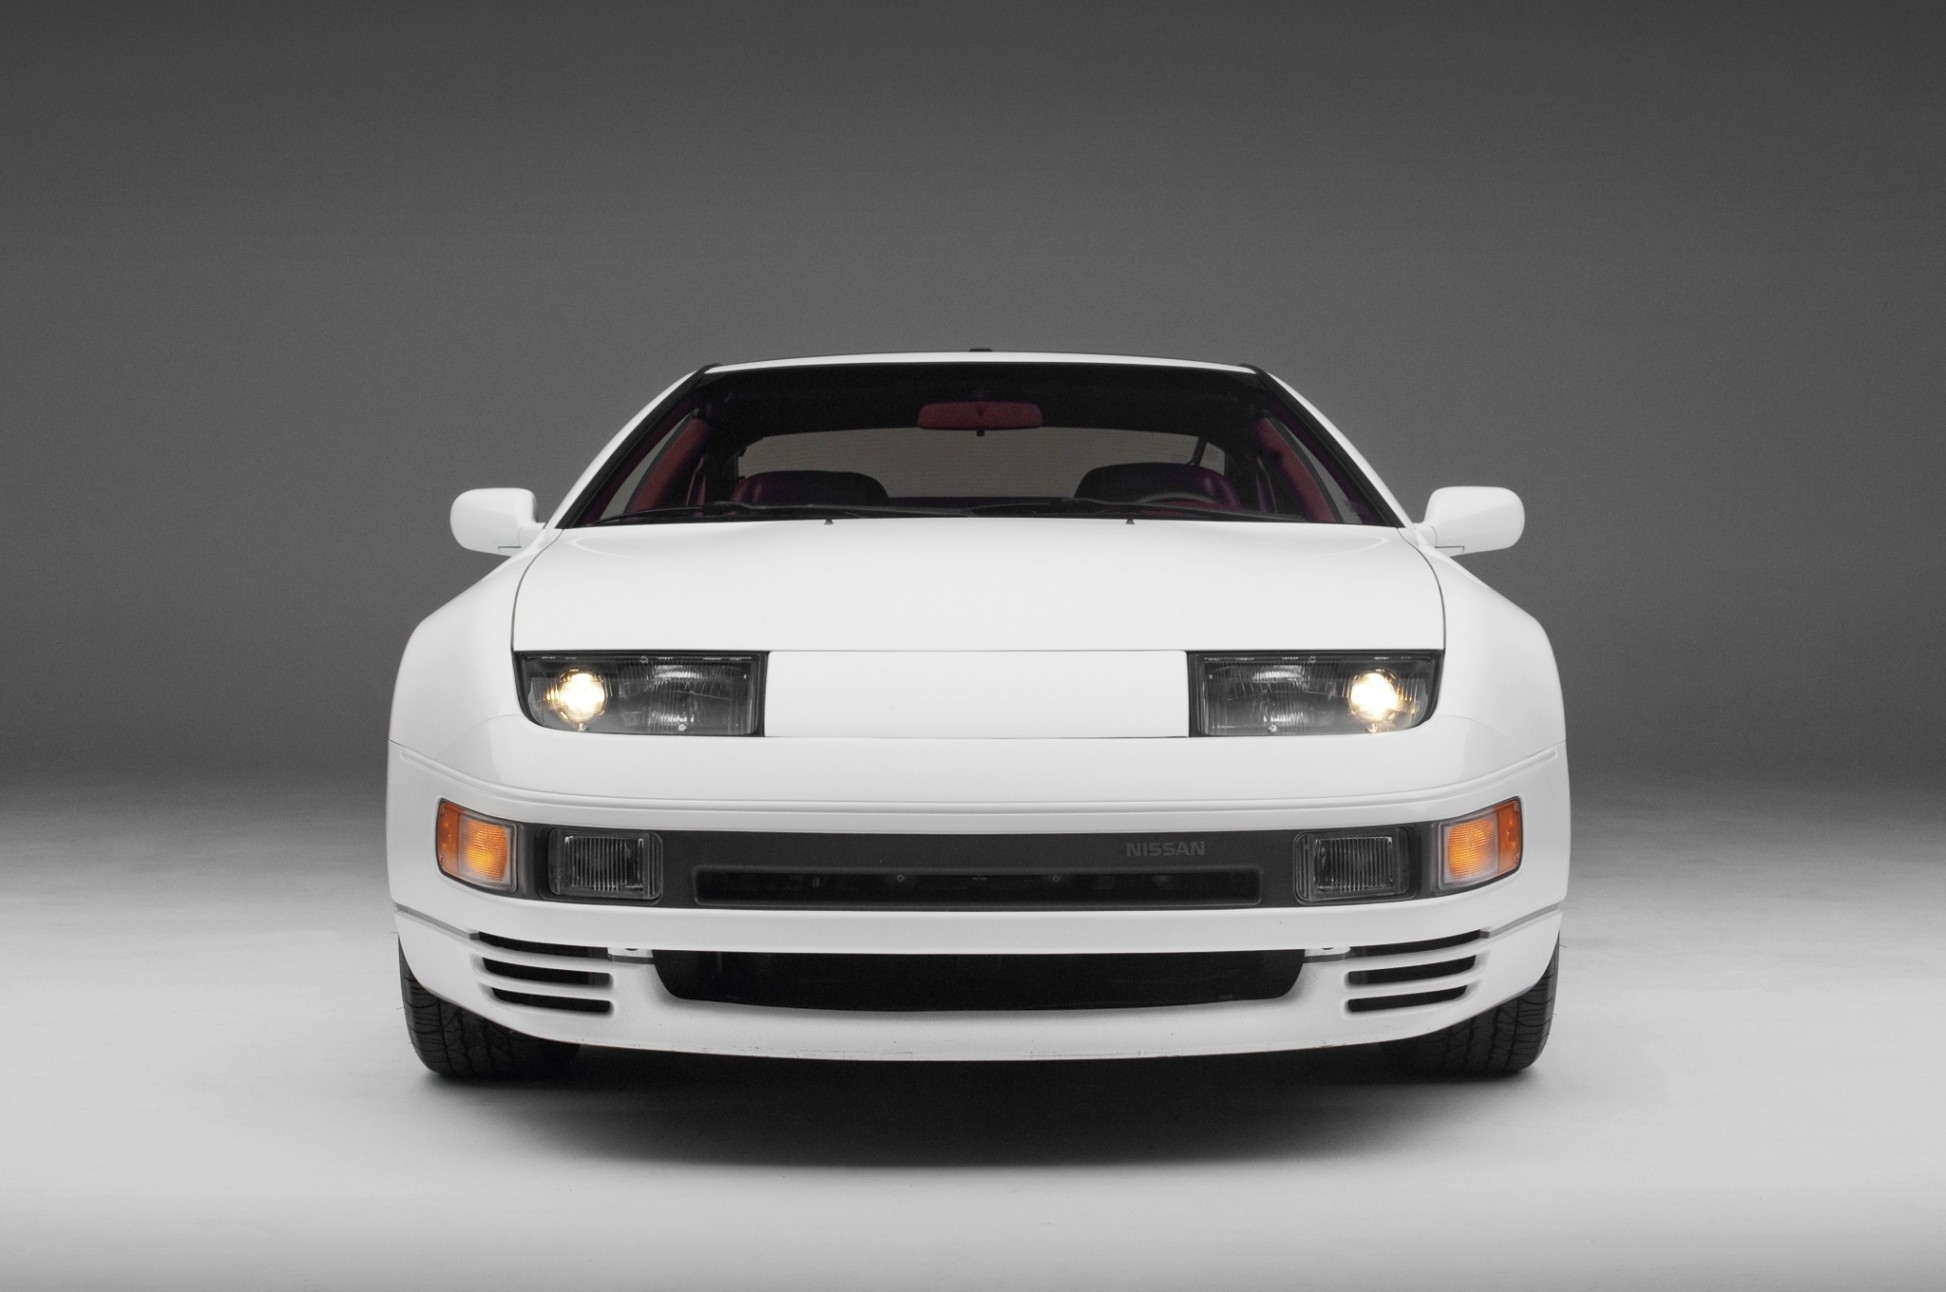 Racing Car Wallpaper 1080p 300zx Wallpaper 73 Images